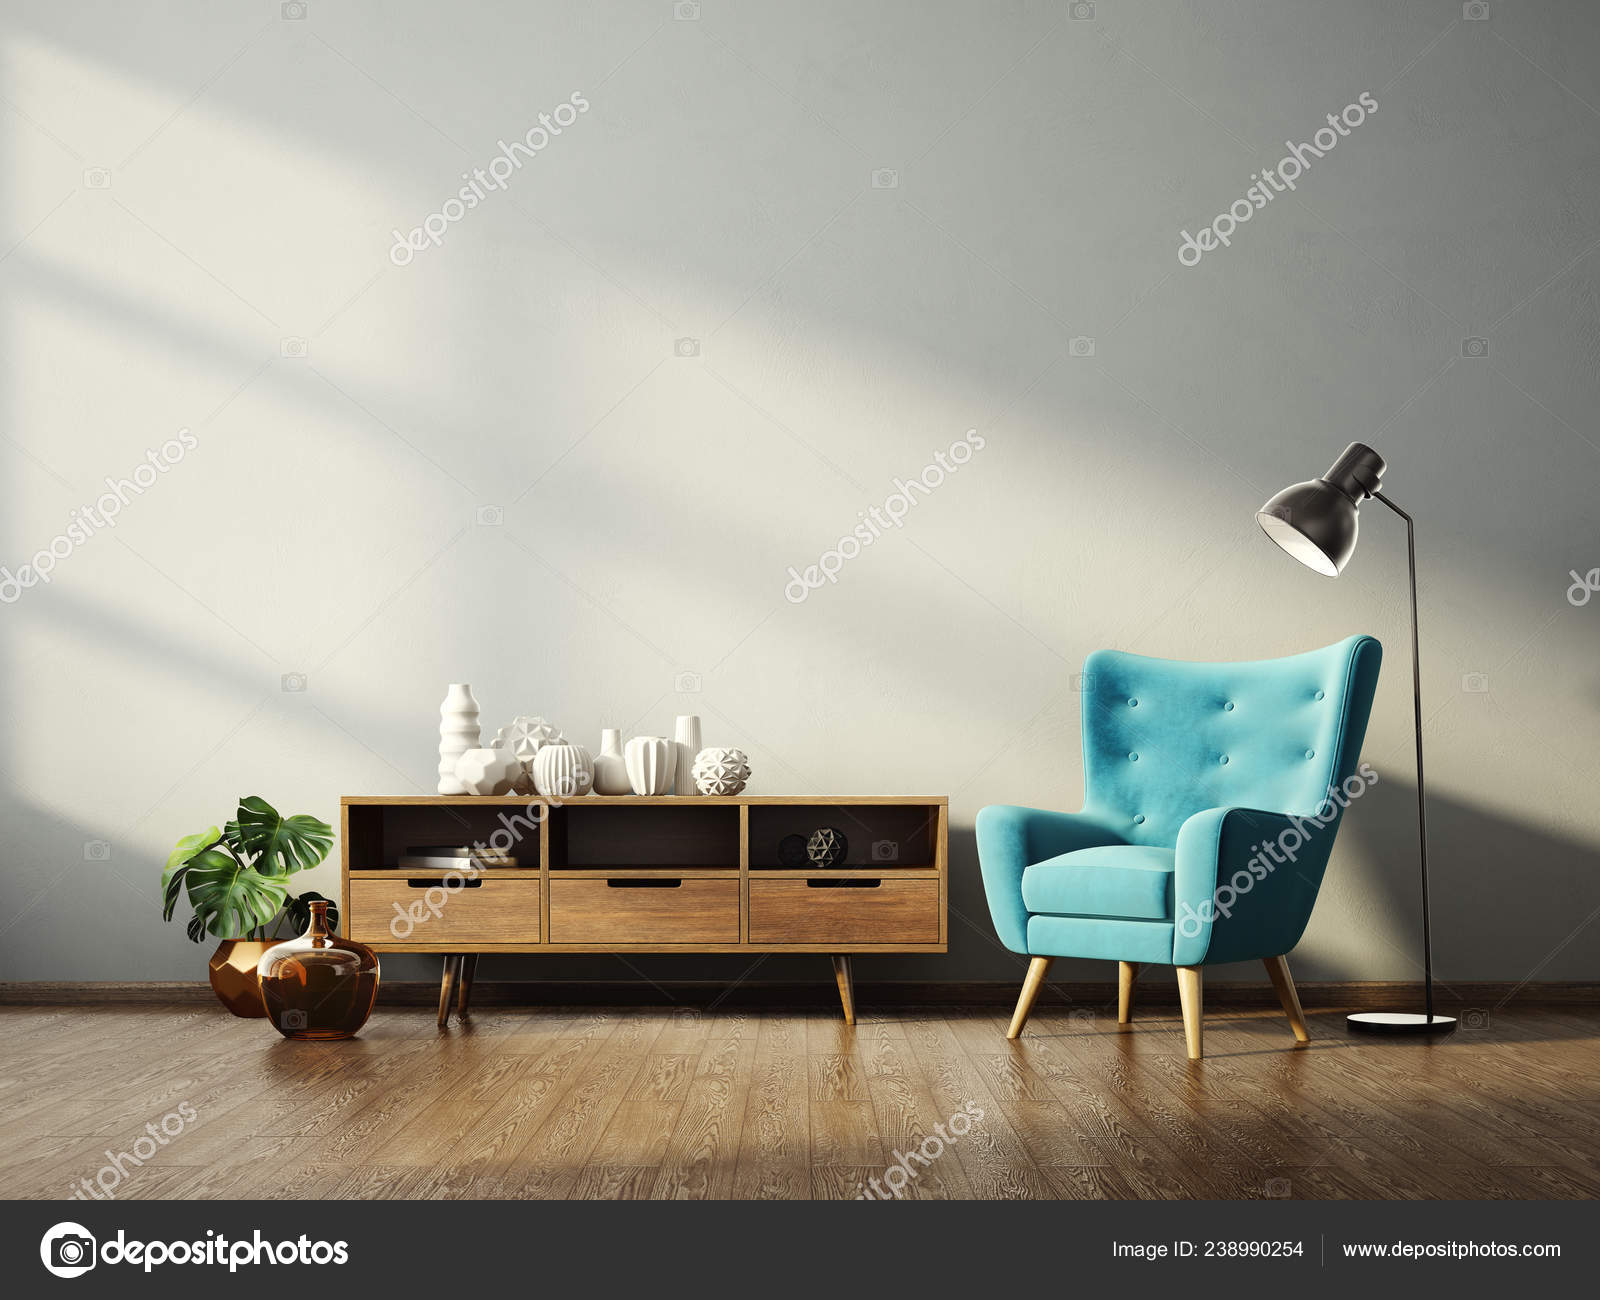 Modern Living Room Blue Armchair Lamp Scandinavian Interior Design Furniture Stock Photo C Alexroz 238990254